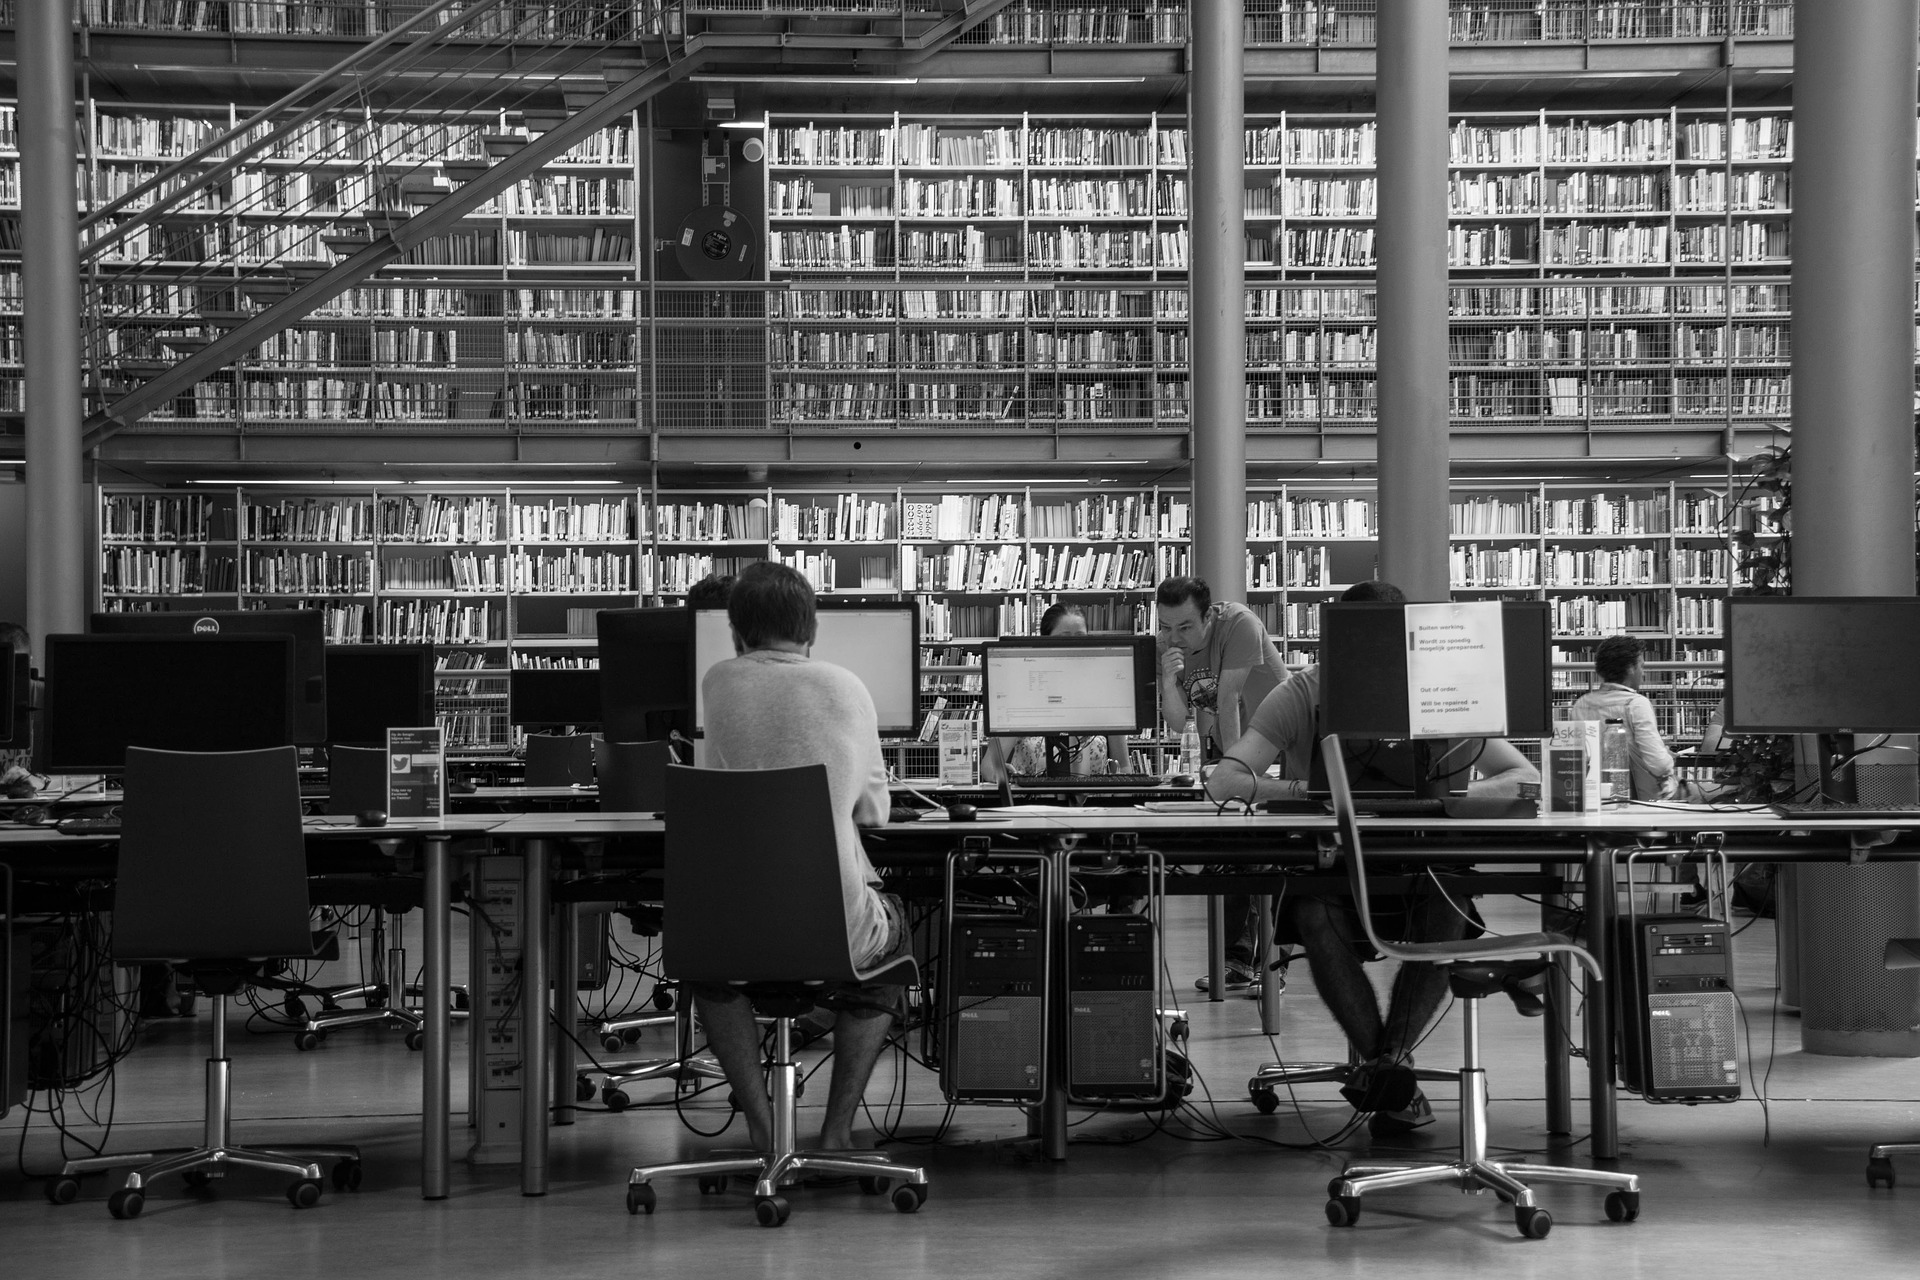 Testimonio de la Universidad de Hartford en Connecticut, UAMS